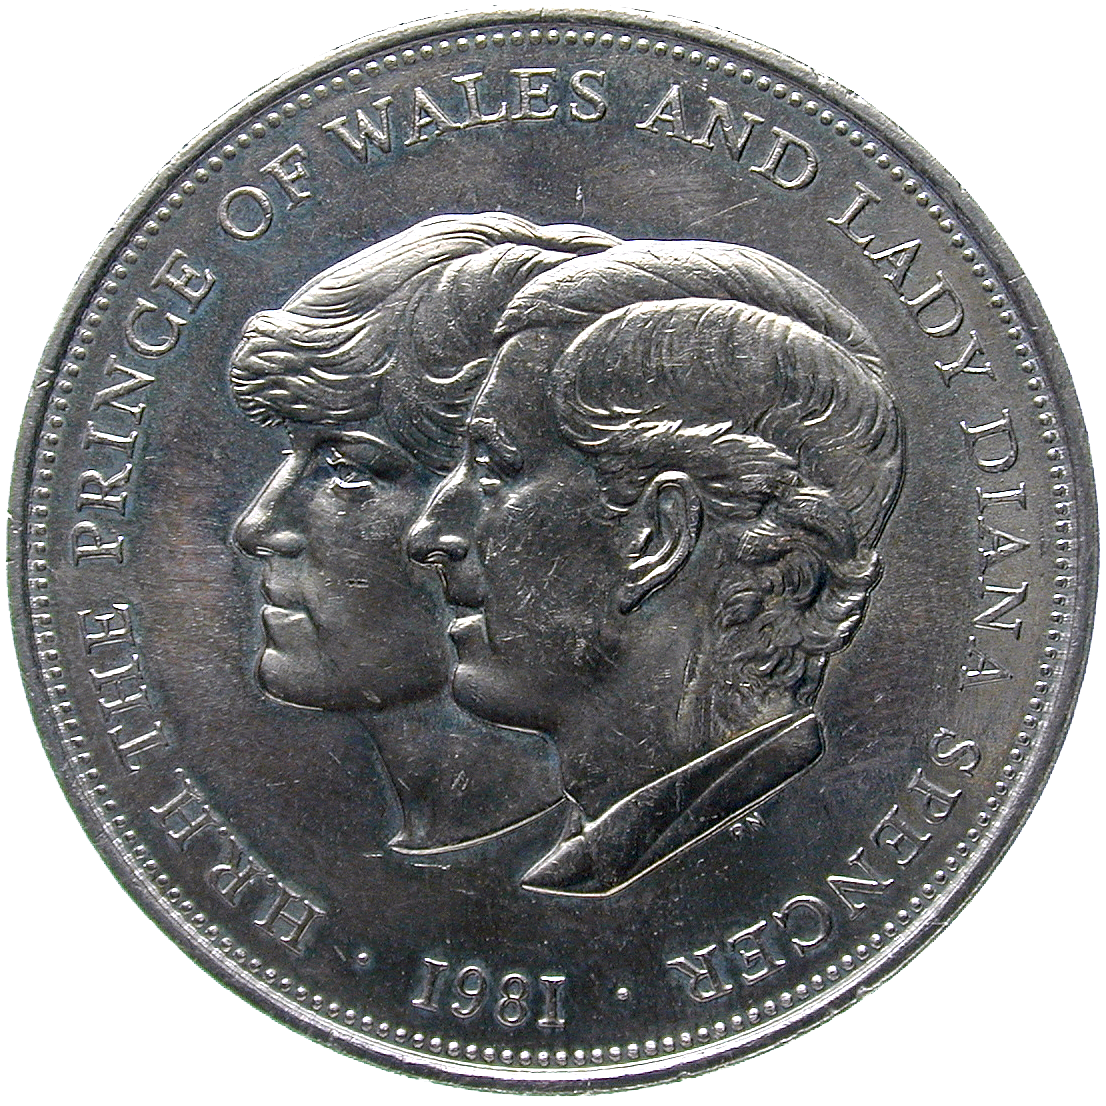 United Kingdom of Great Britain, Medal 1981 (reverse)